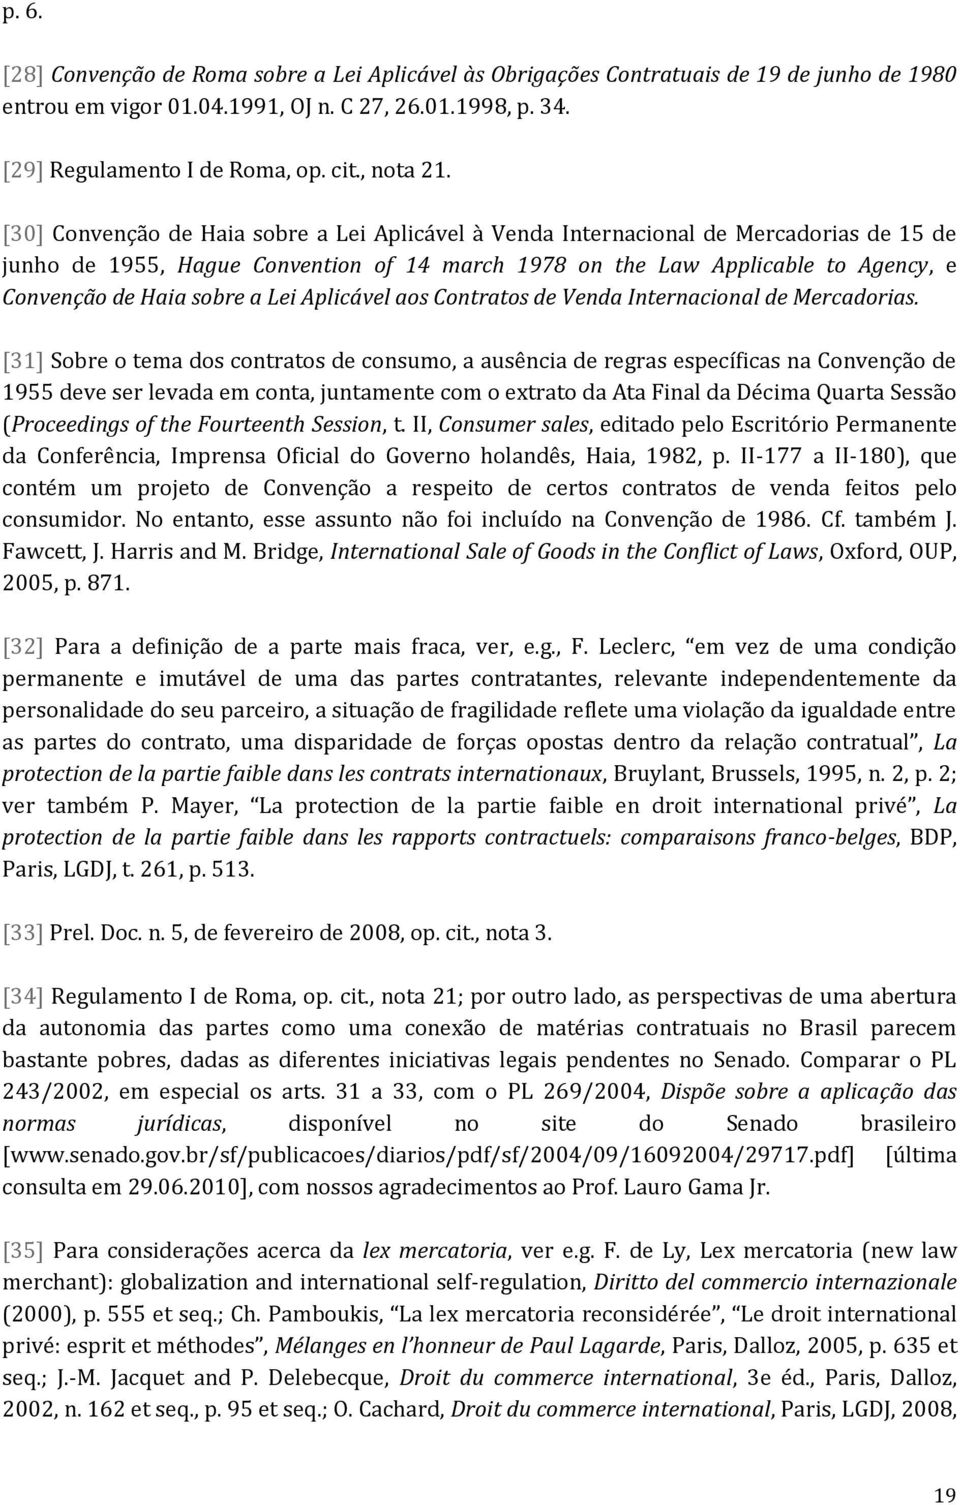 [30] Convenção de Haia sobre a Lei Aplicável à Venda Internacional de Mercadorias de 15 de junho de 1955, Hague Convention of 14 march 1978 on the Law Applicable to Agency, e Convenção de Haia sobre